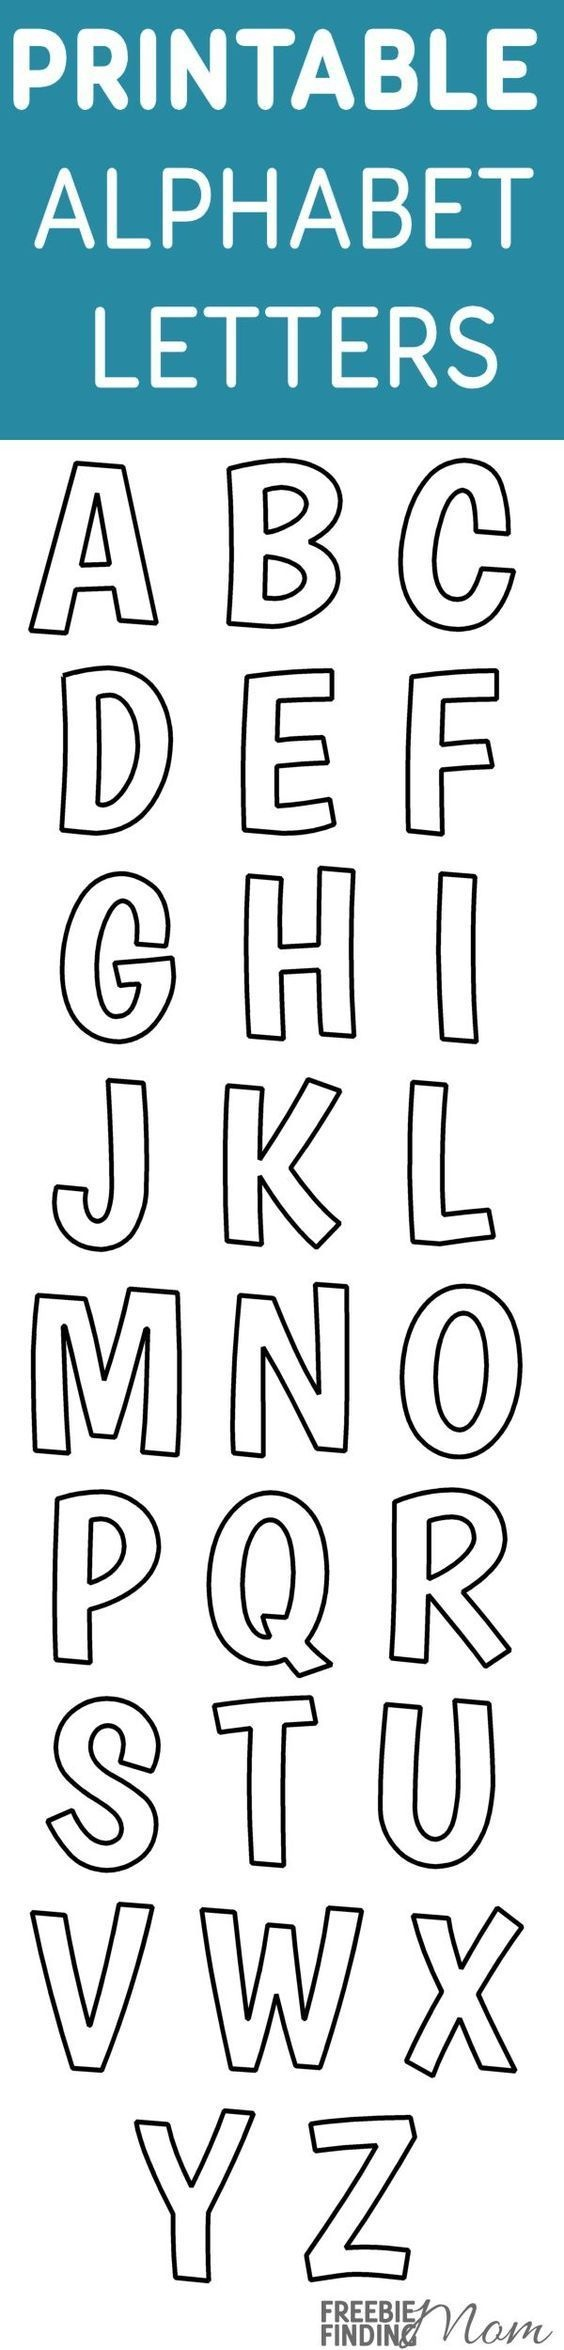 Printable Free Alphabet Templates | The Group Board On Pinterest - Free Printable Fonts Stencils